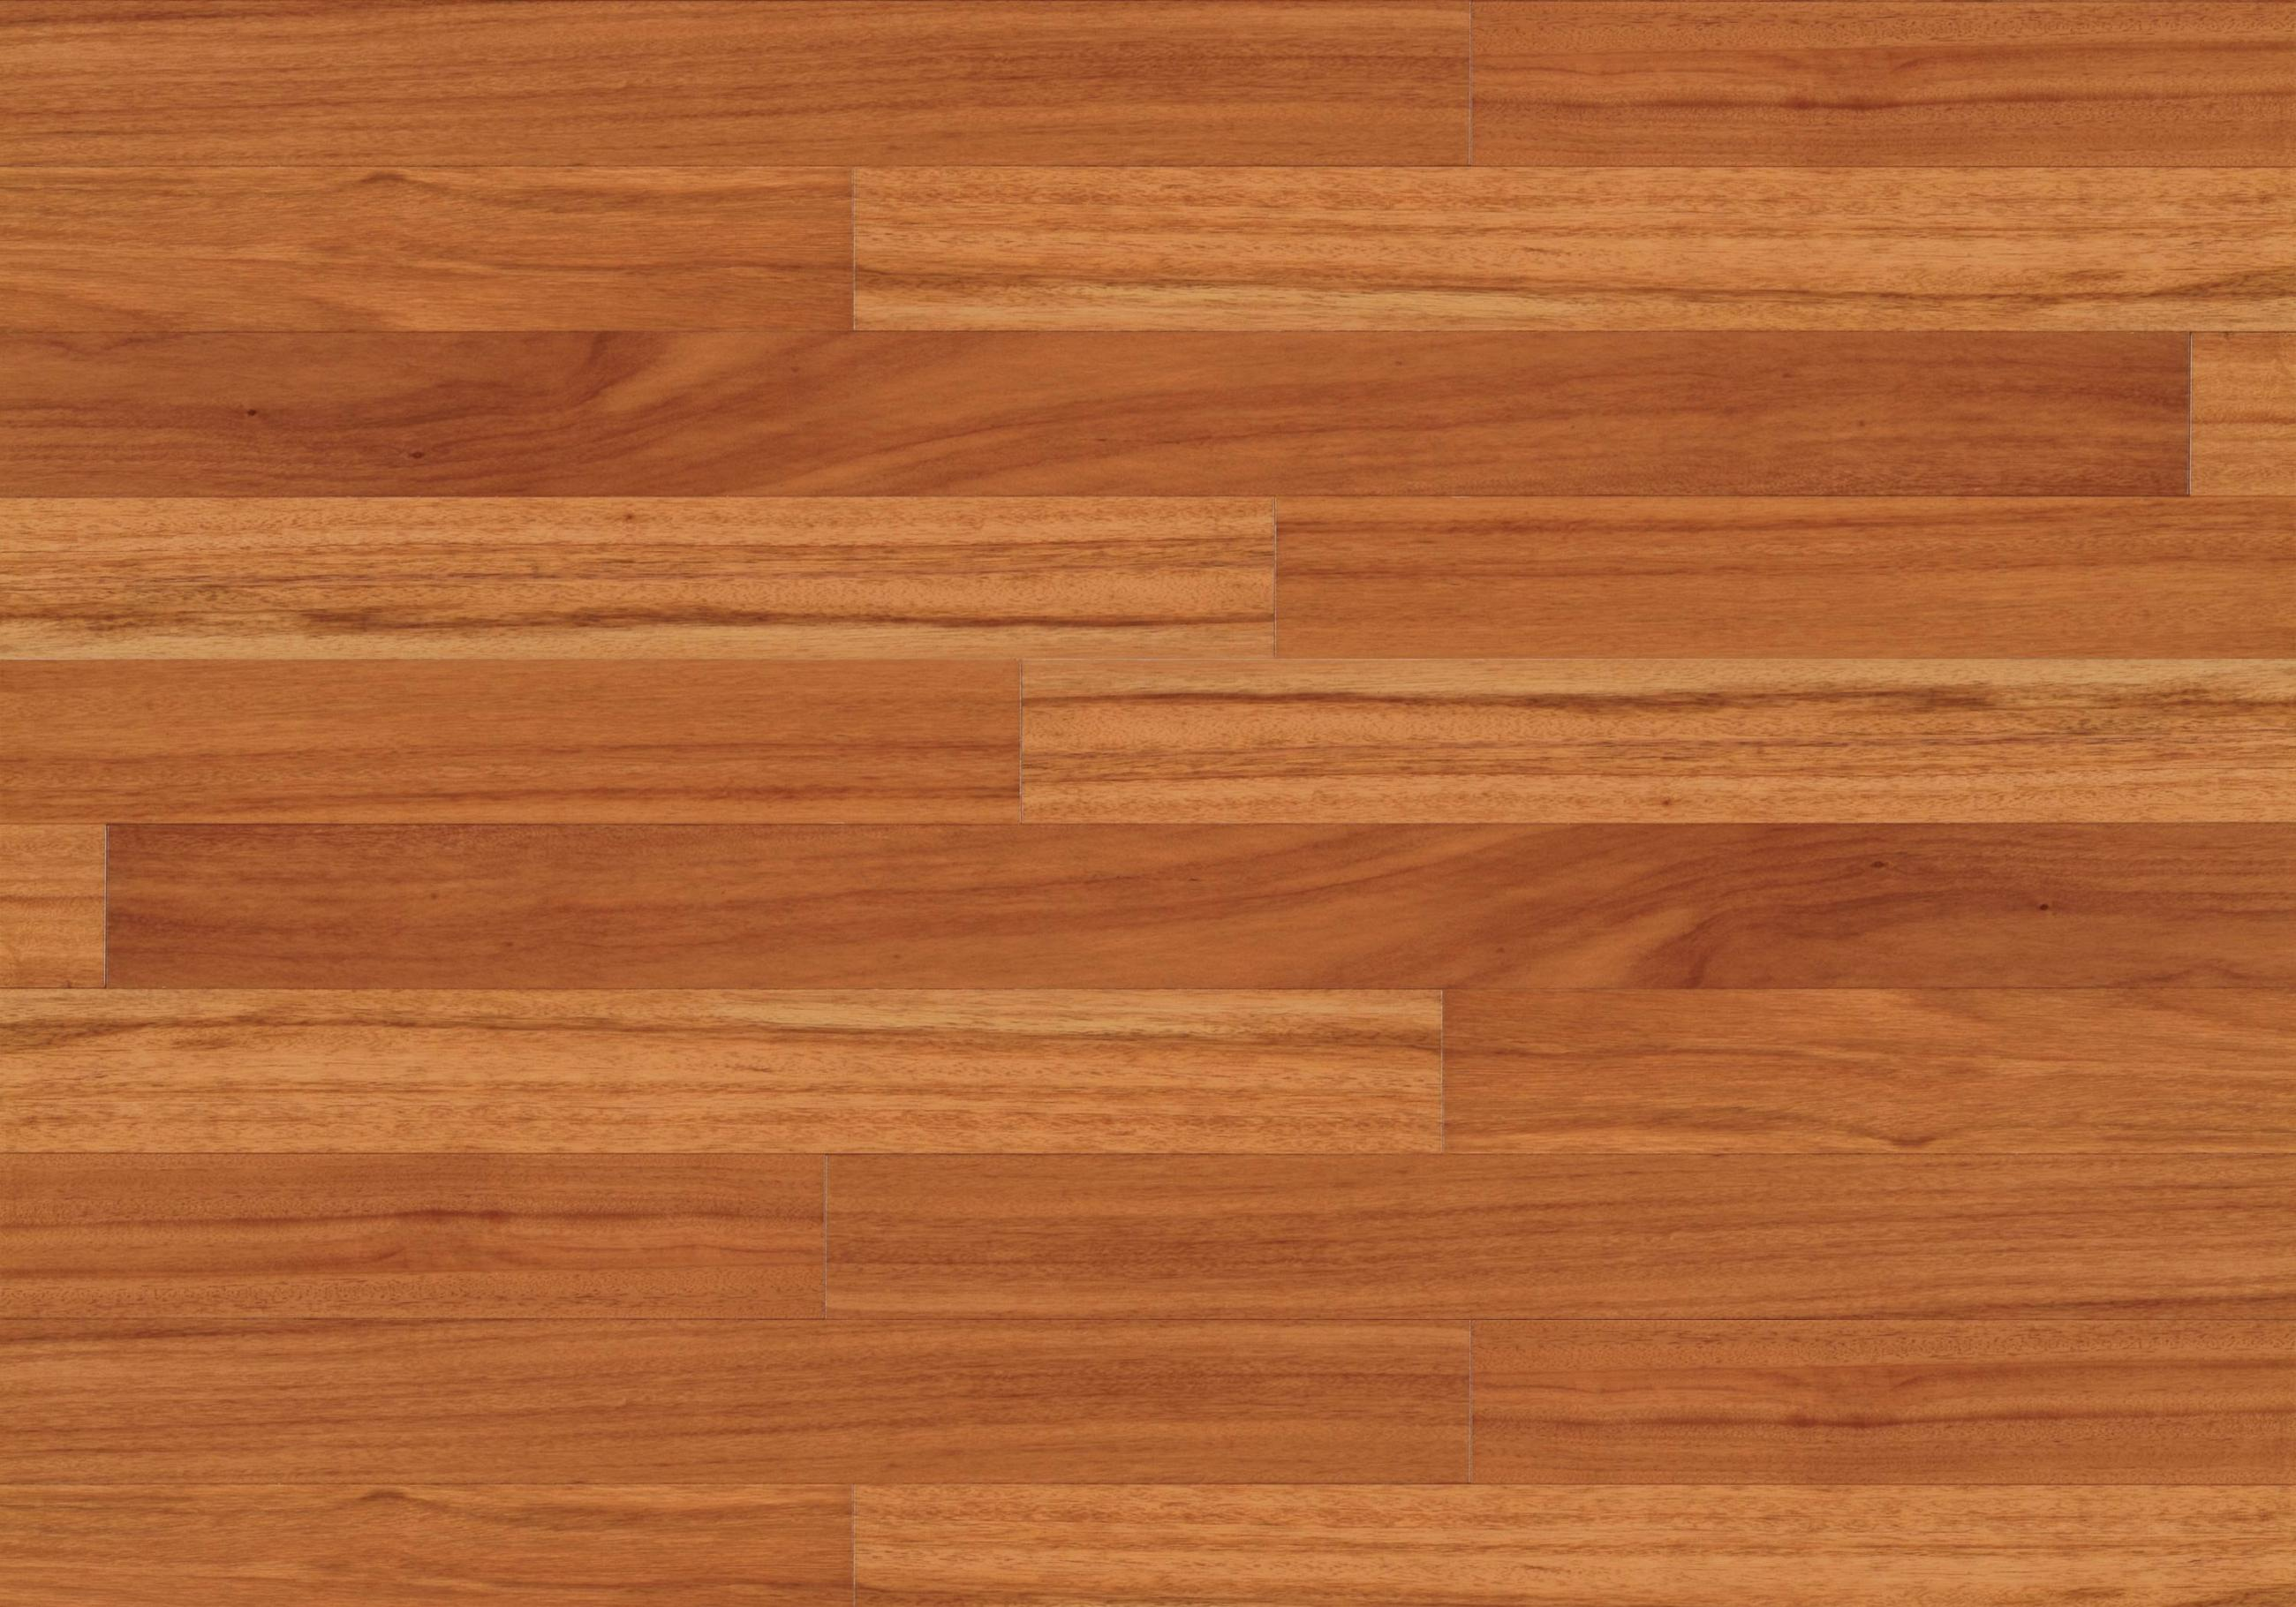 Engineered hardwood flooring specialty store in anaheim ca for Hardwood flooring